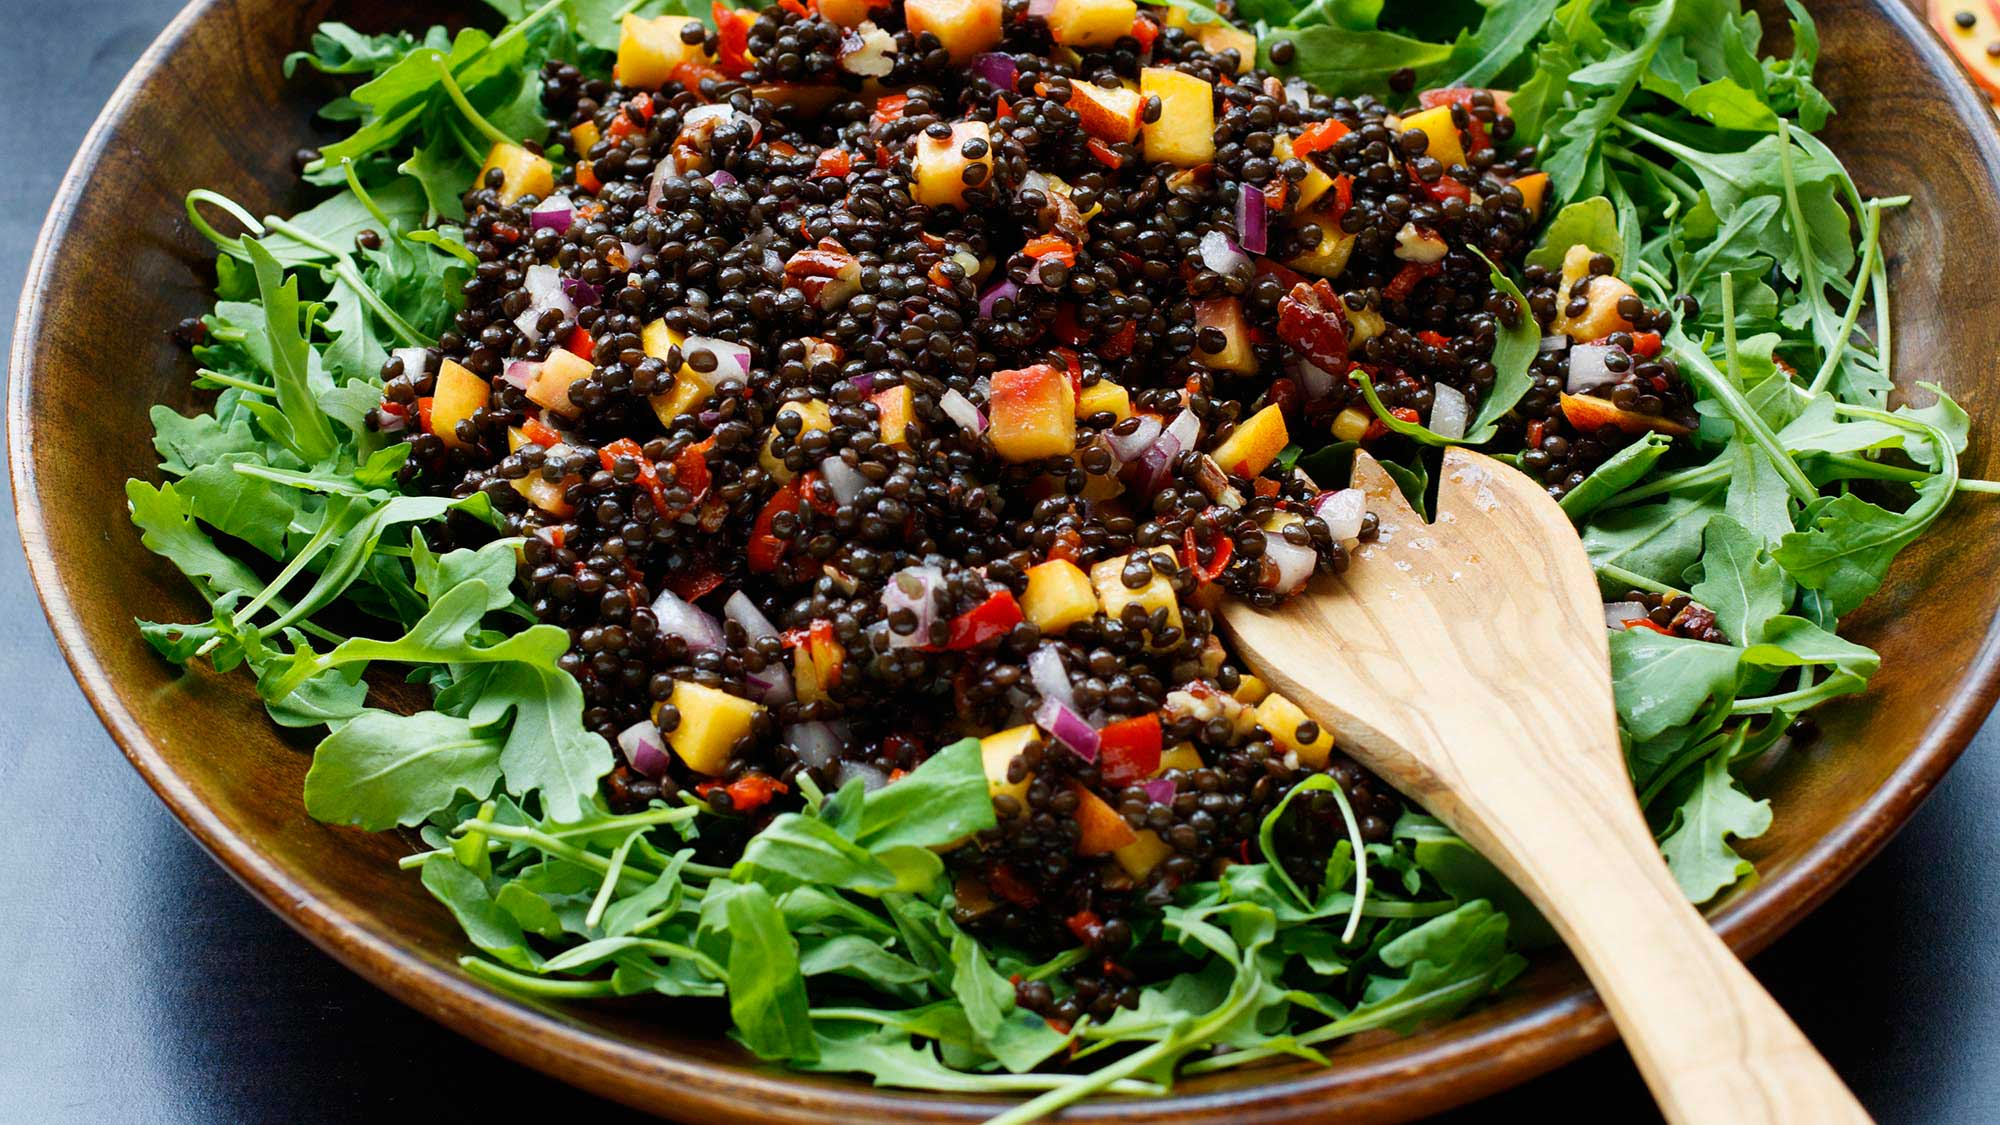 Lentil_and_peach_salad_with_tarragon_mustard_vinaigrette_2000x1125-rs.jpg